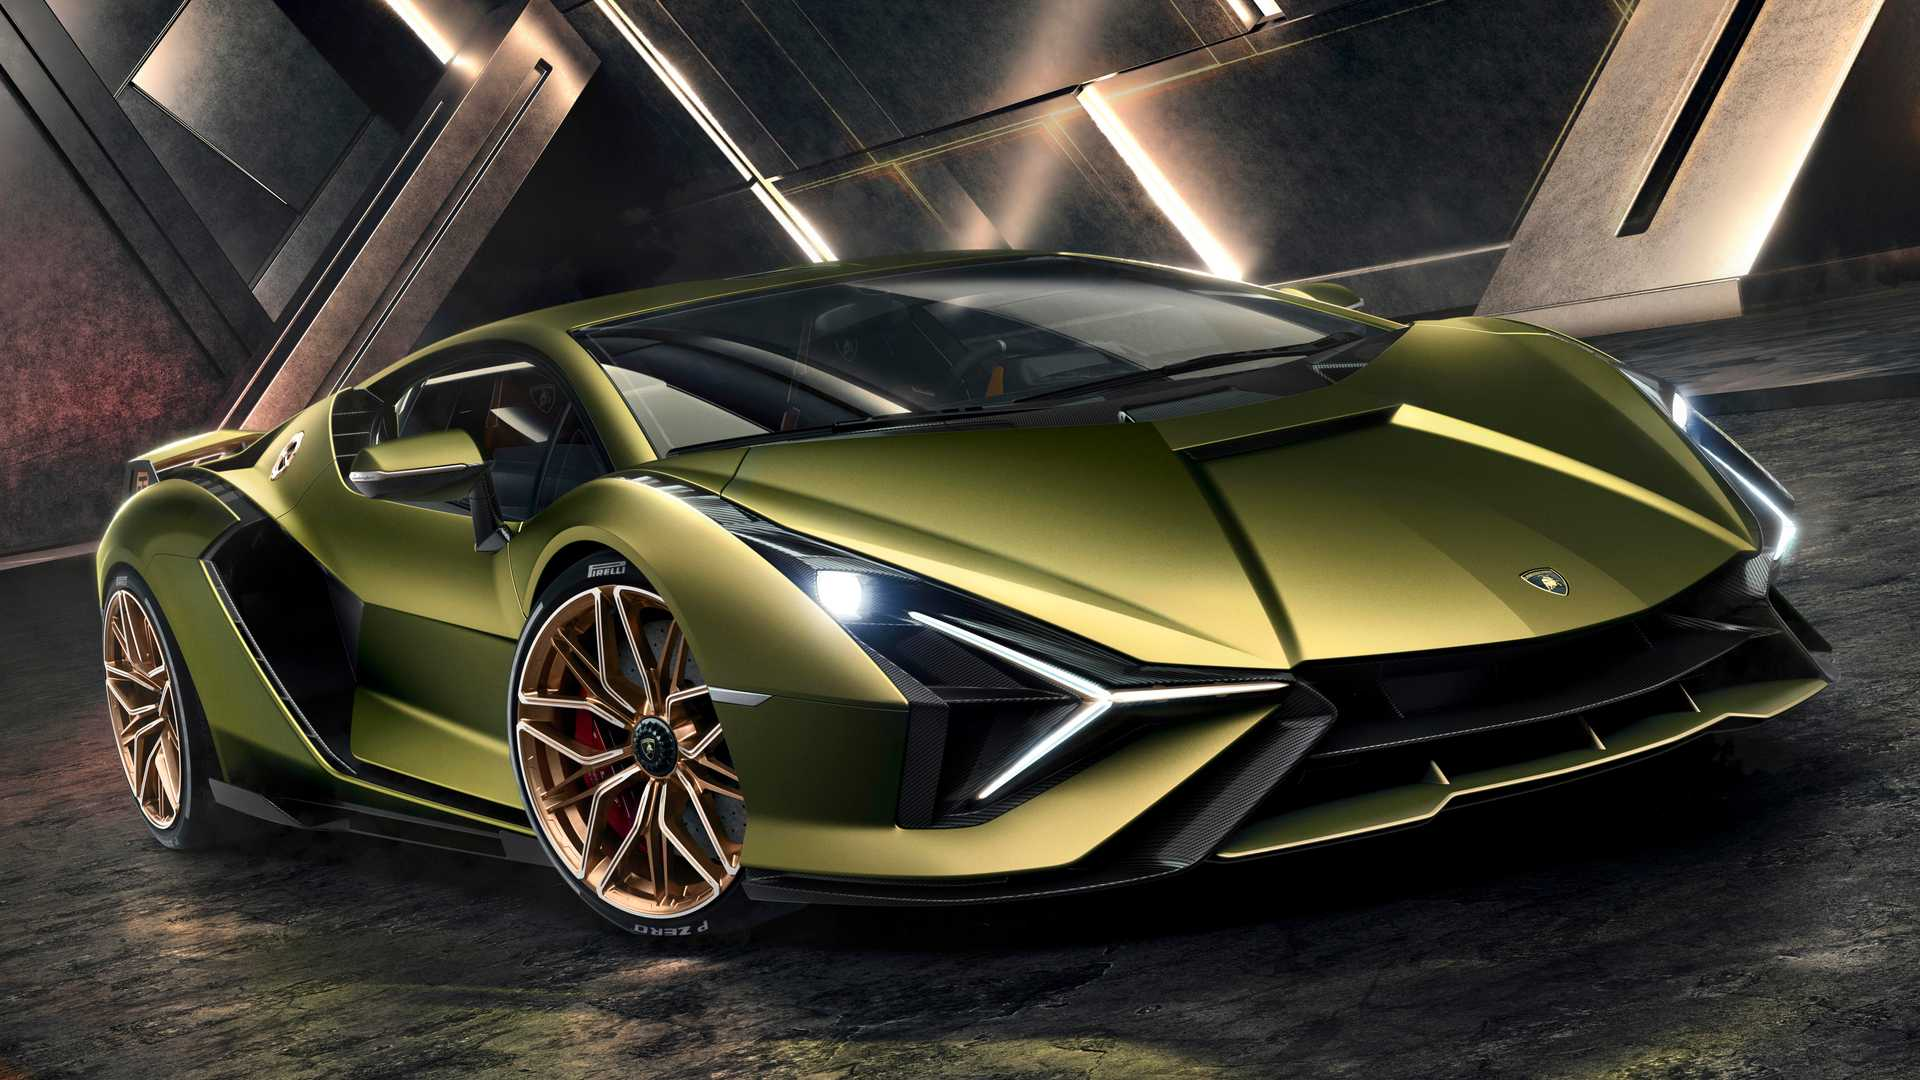 How Much Does A Lamborghini Actually Cost?